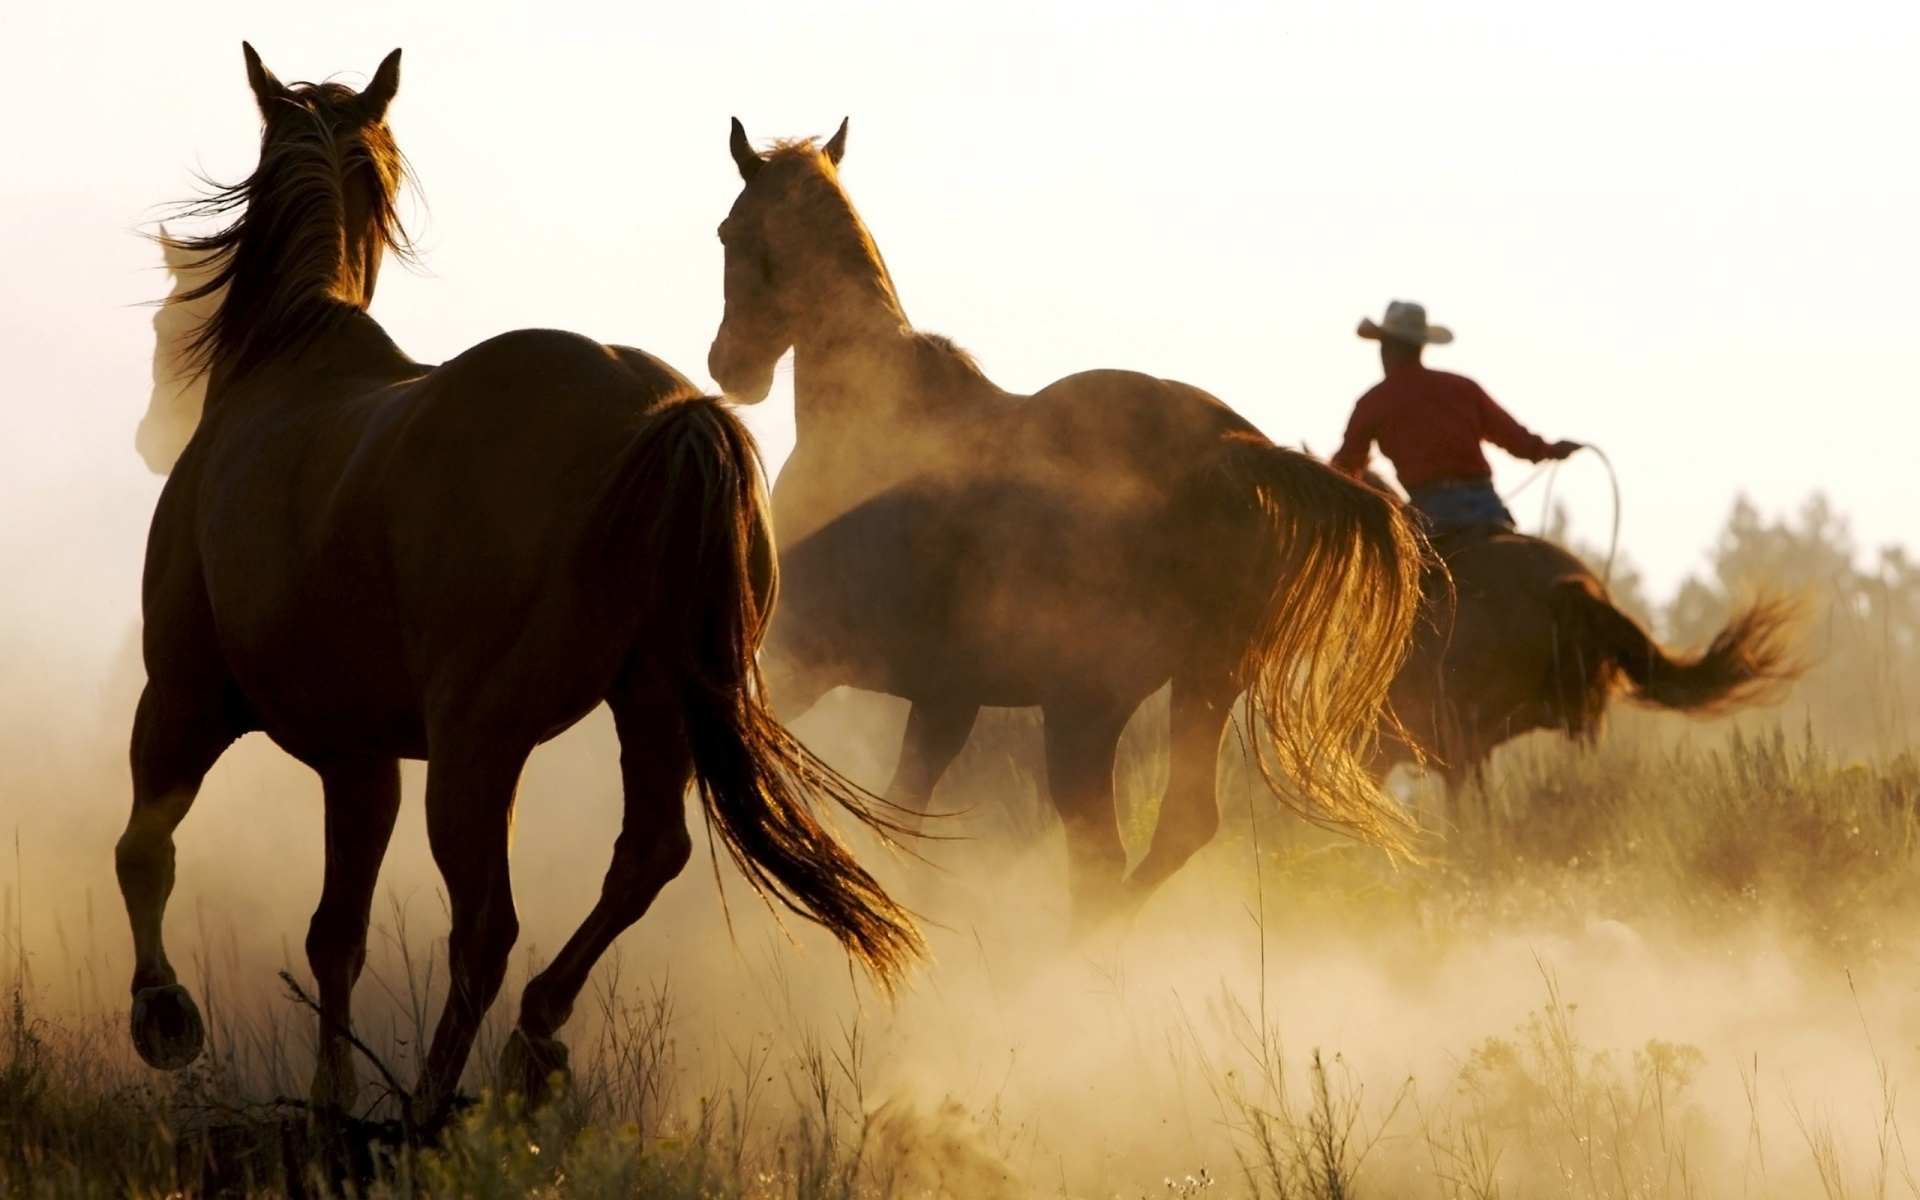 wild-horses-in-the-jungle-high-resolution-wallpaper-download-wild-horses-images-free